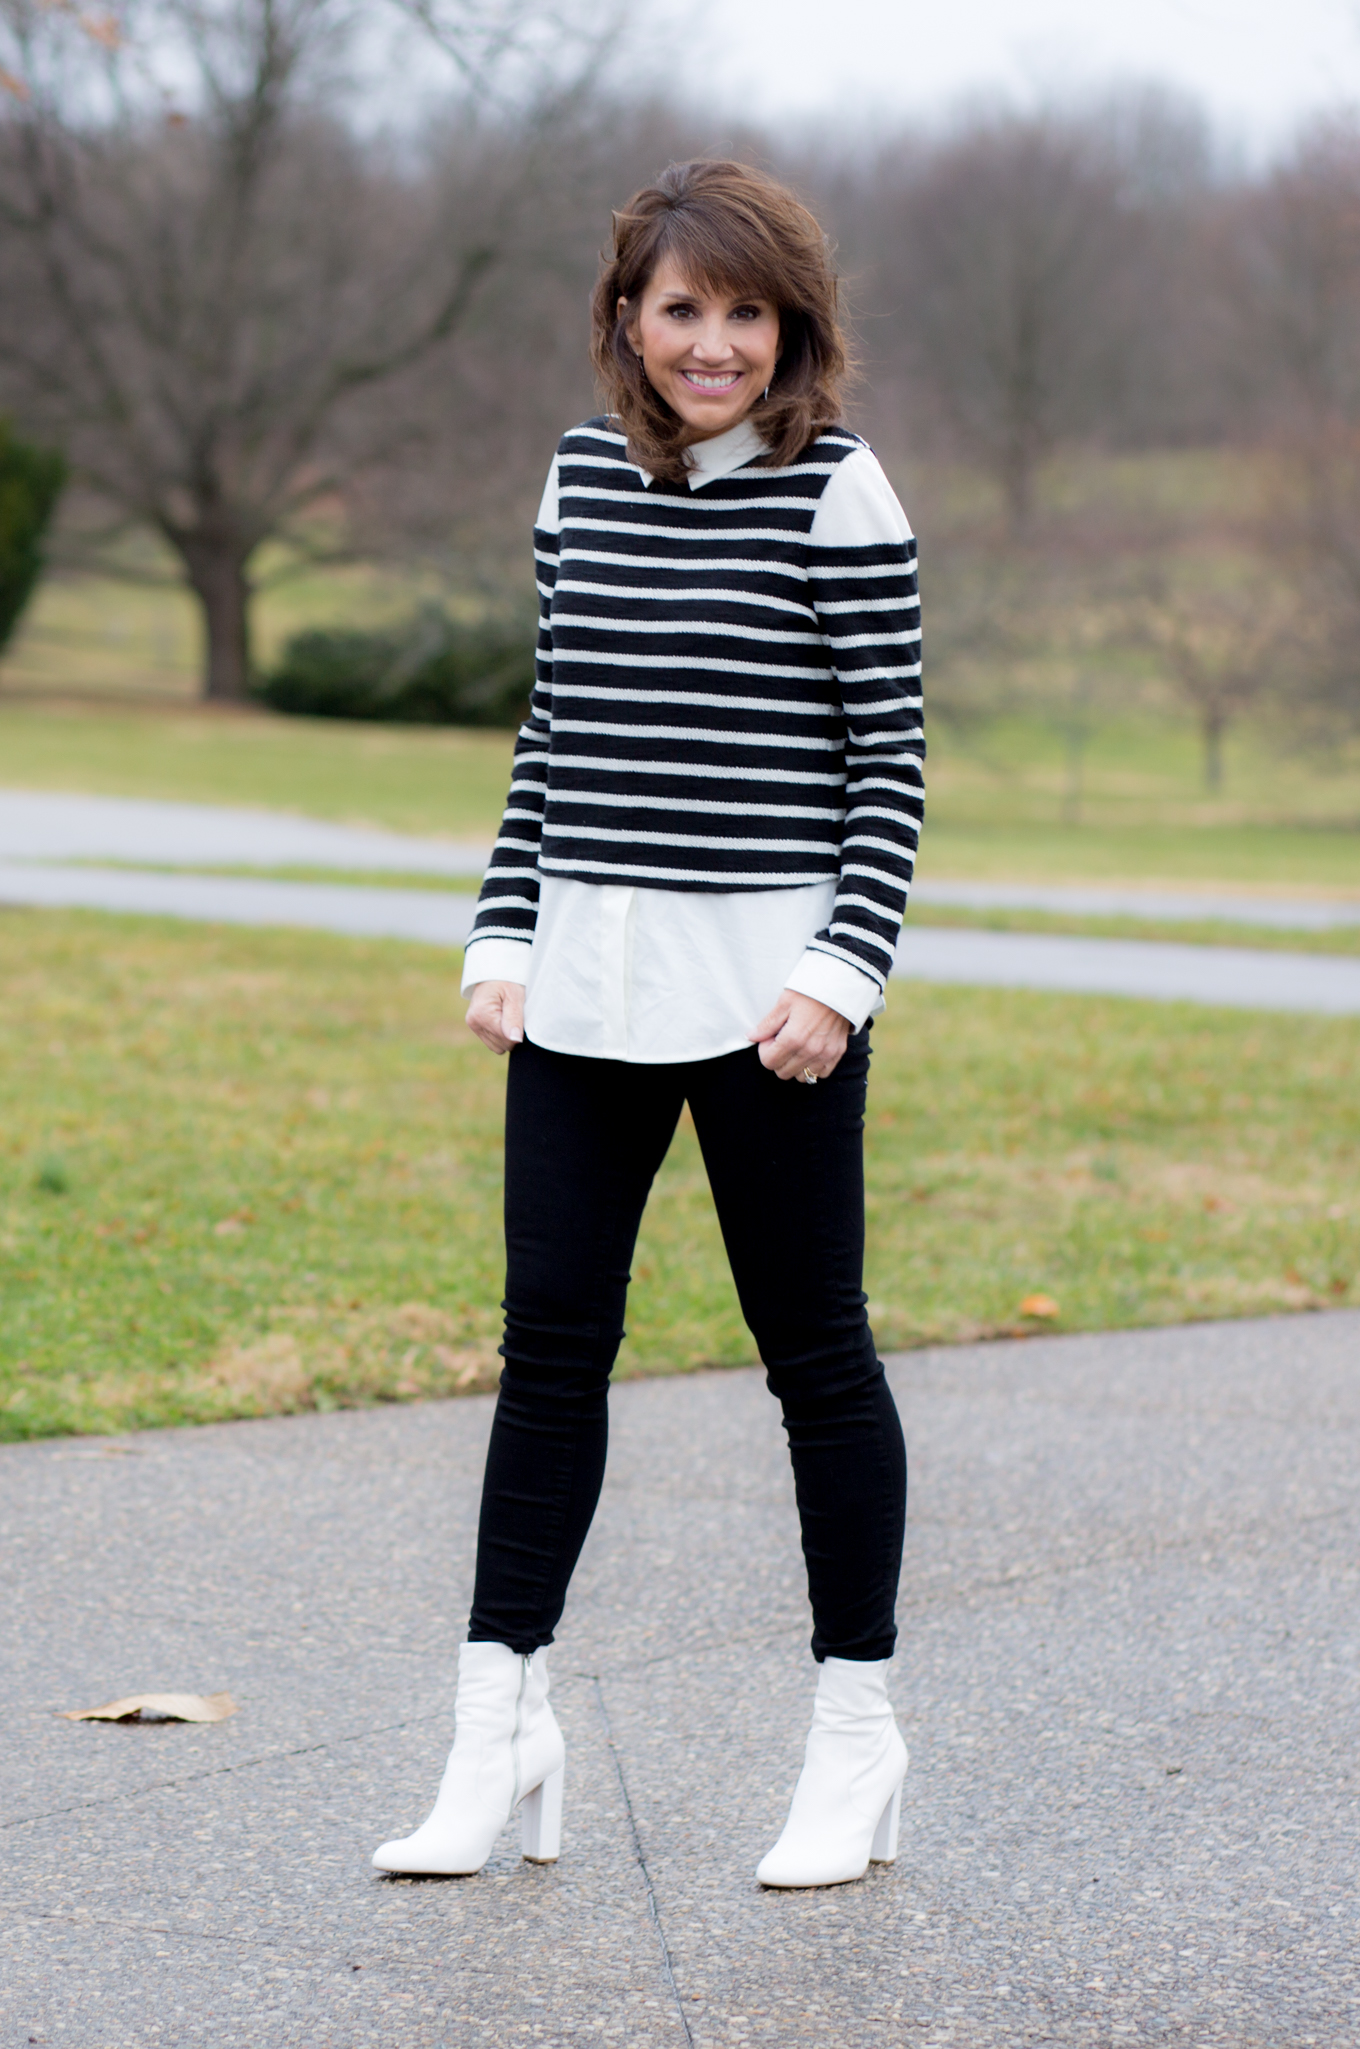 25 Days Of Winter Fashion: How To Style White Boots